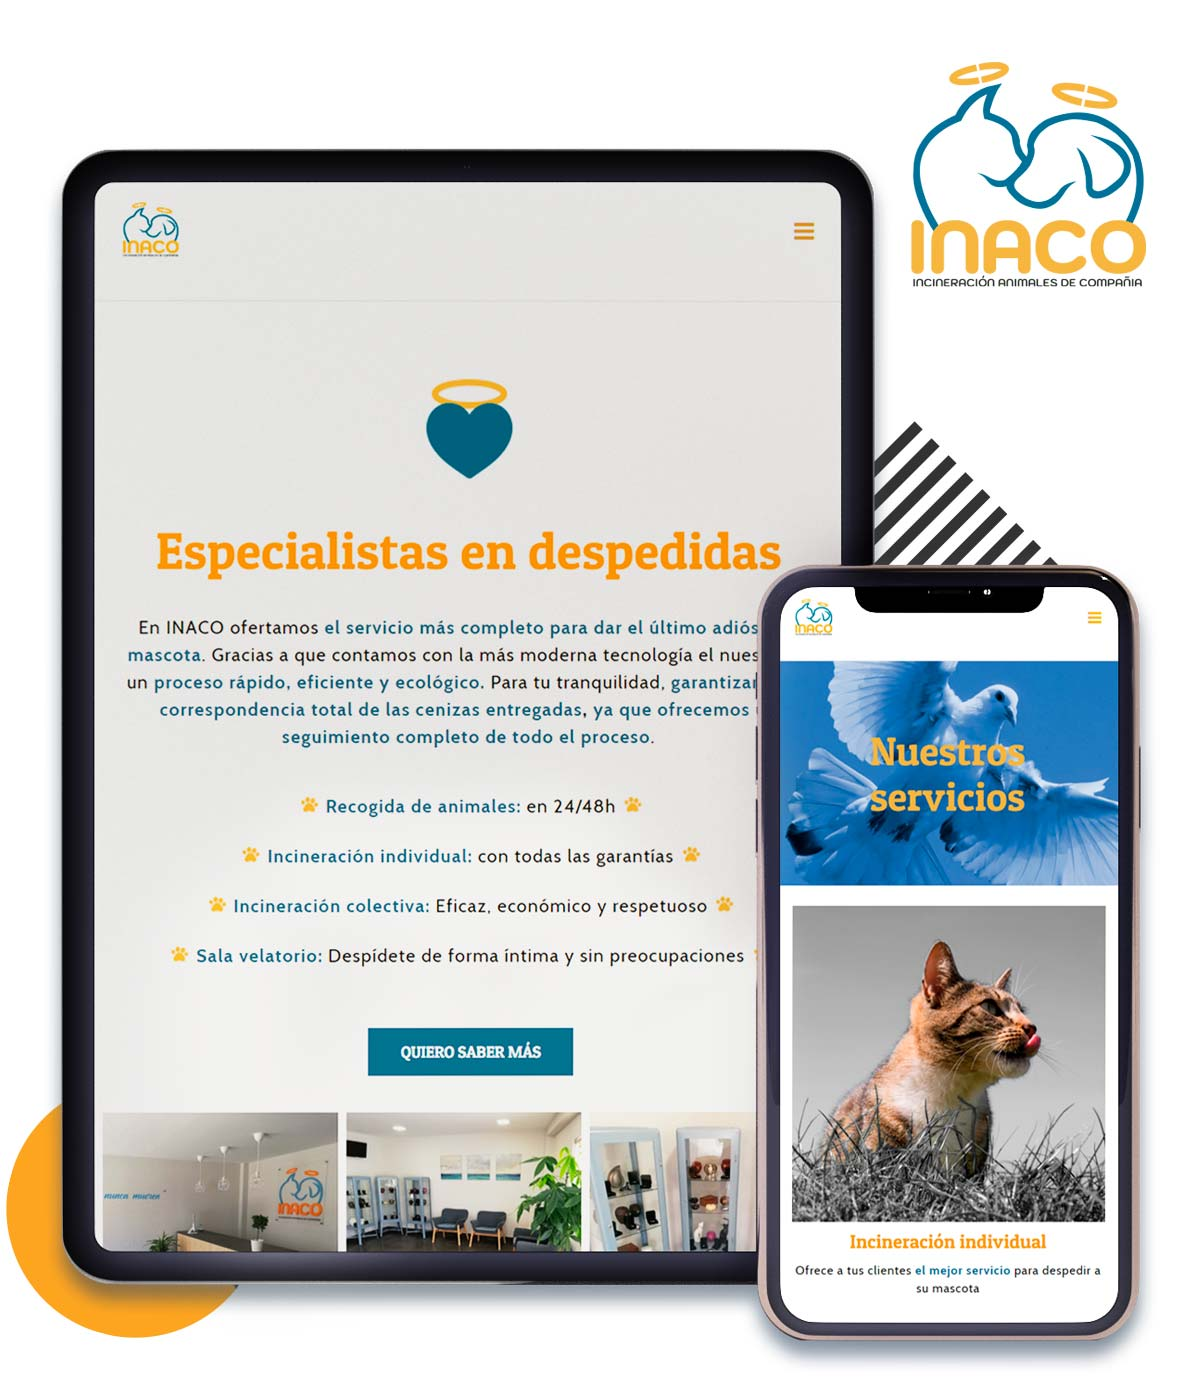 Proyecto-Inaco-Incineracion-Marketing-2VM